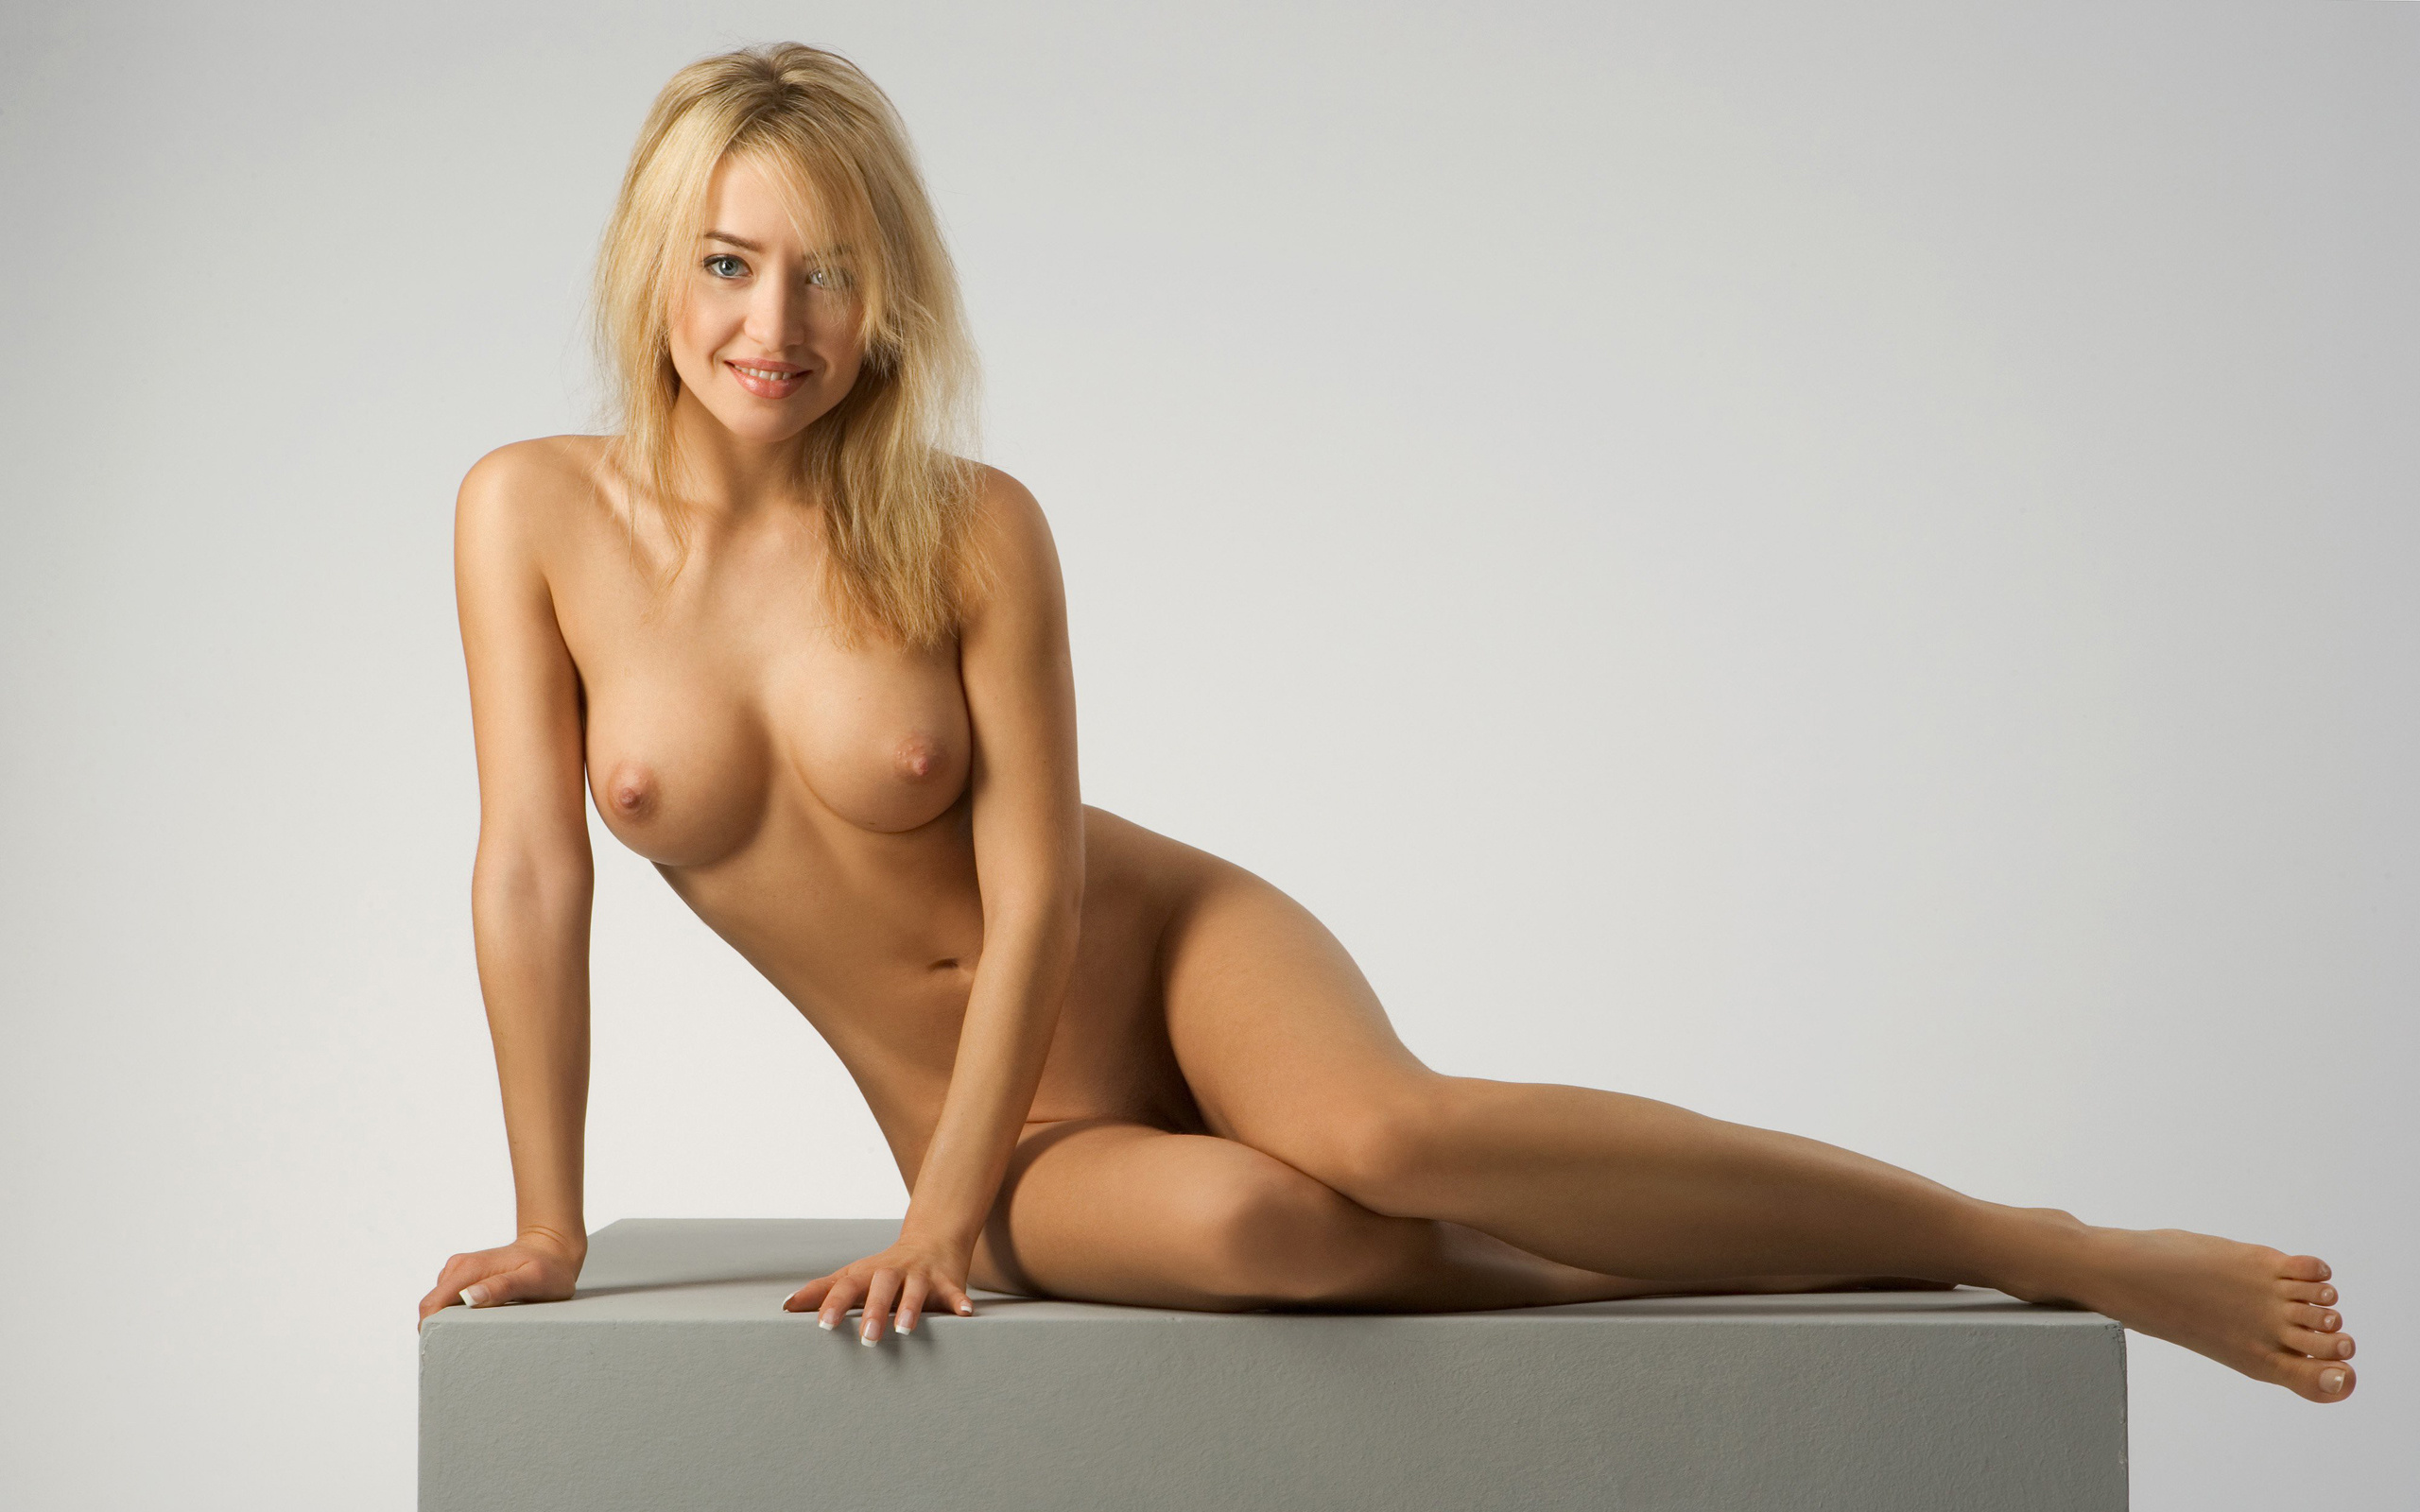 Download photo 2560x1600, blonde, sexy girl, sweet, cute ...